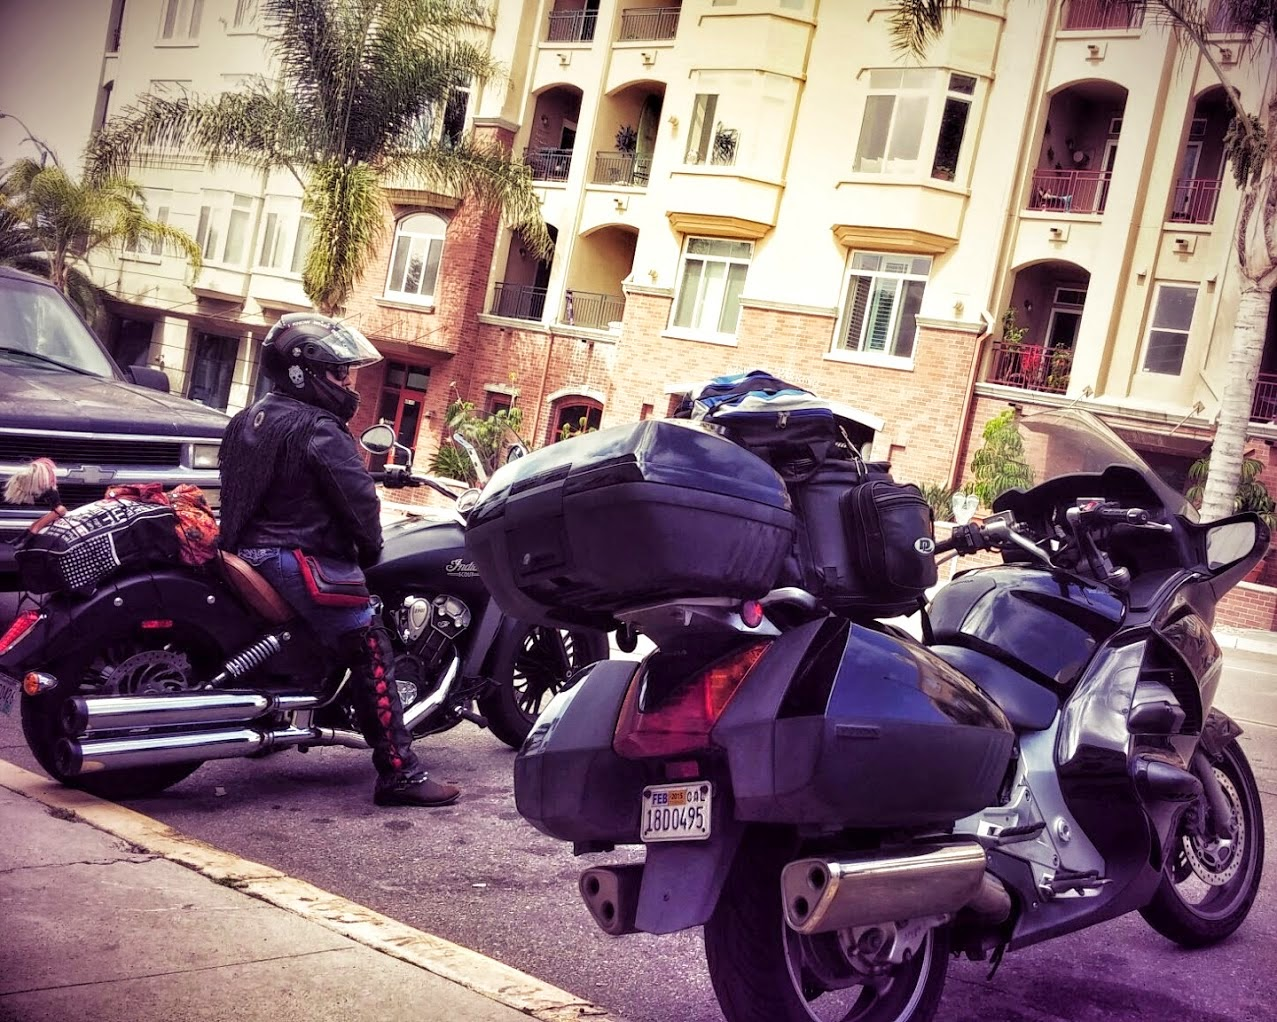 In Love With The Road ~ Rude Biker Chick 90892f2f0